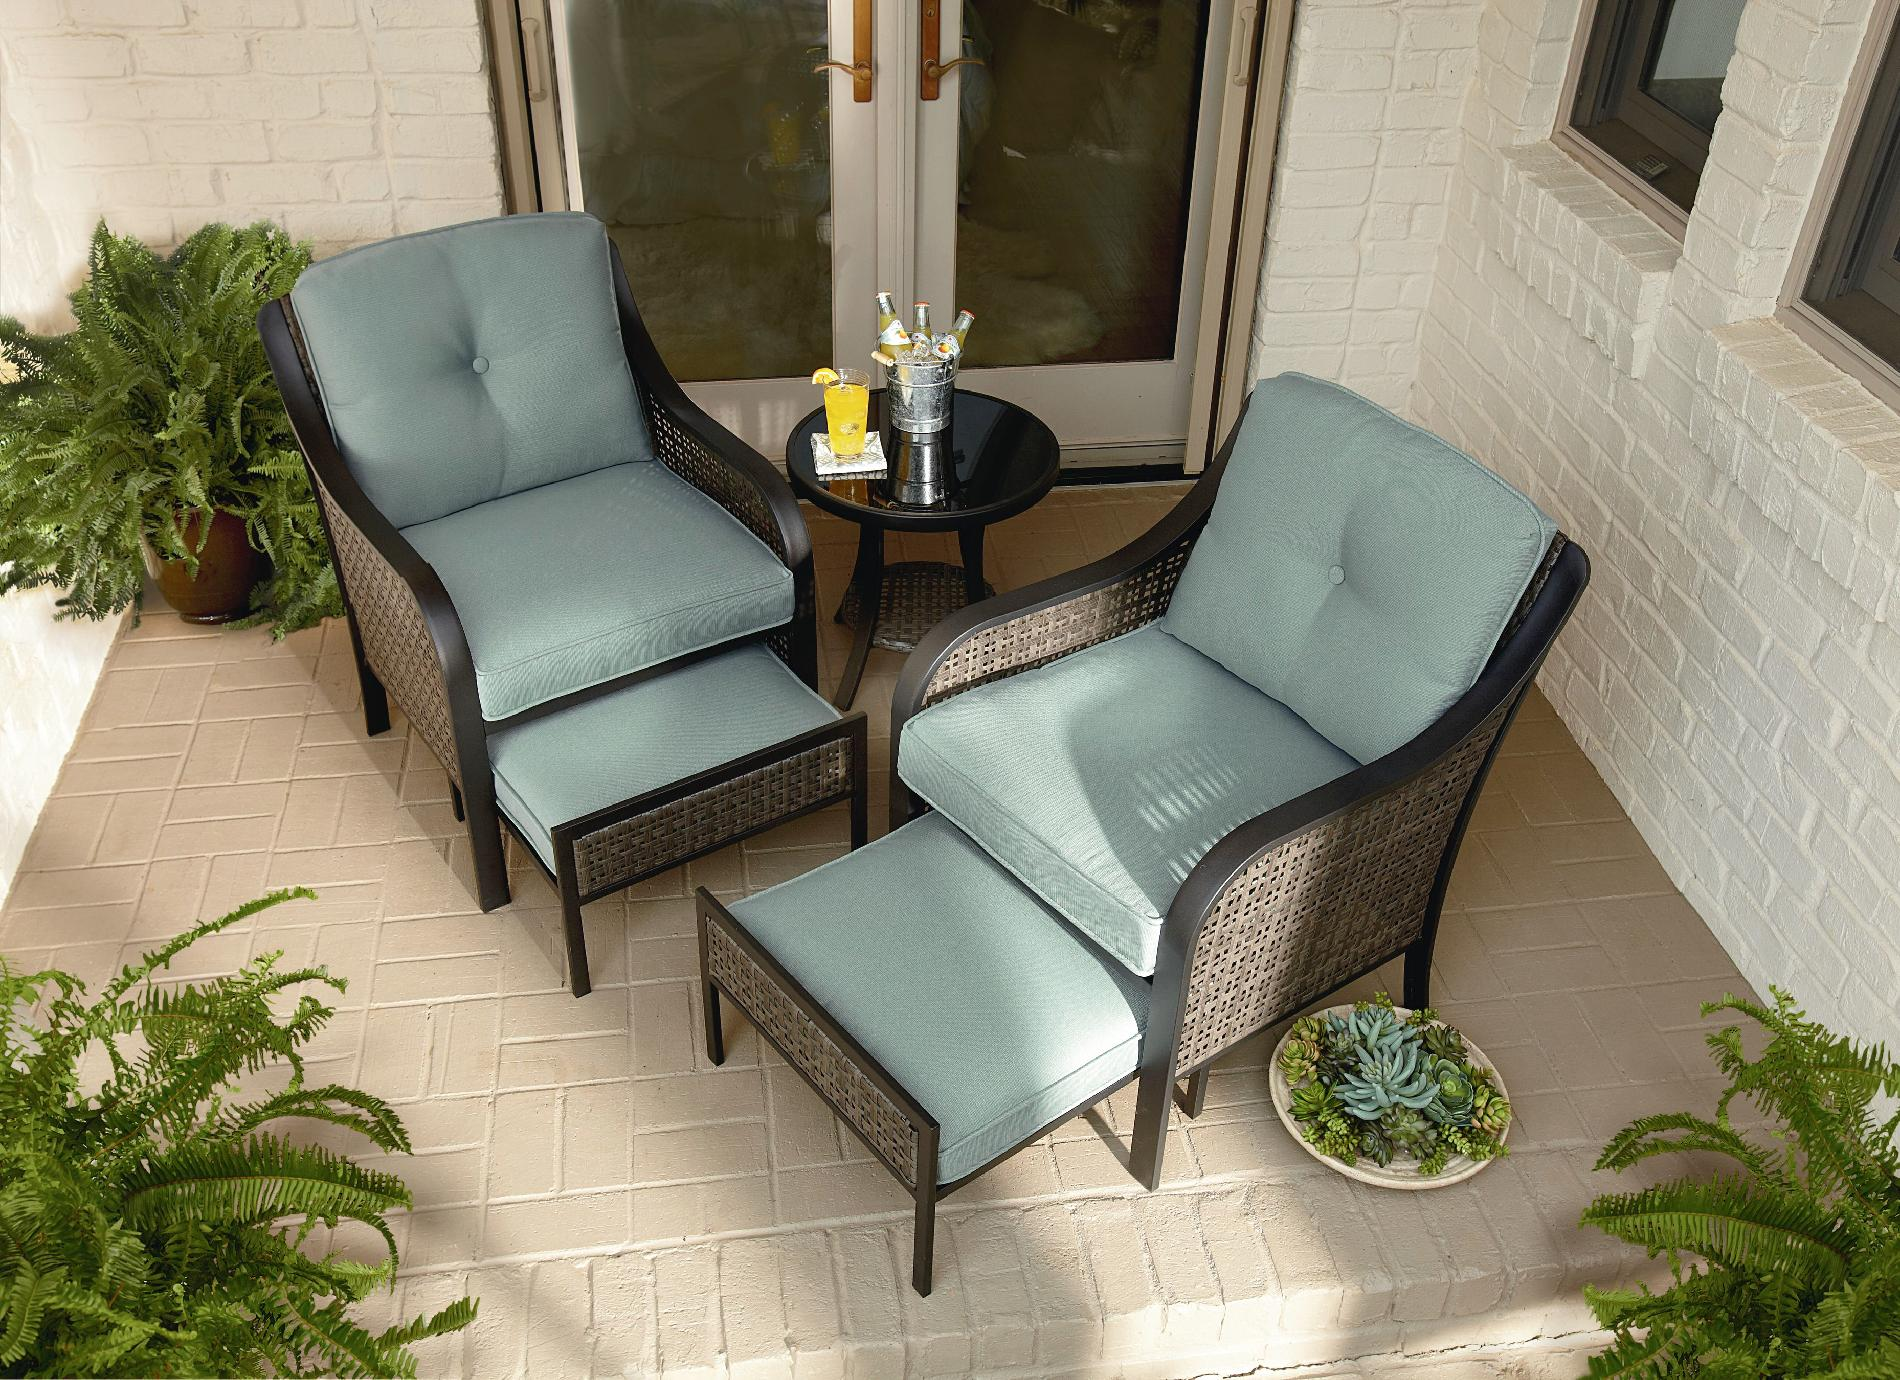 outdoor chair and ottoman antique rocking price guide garden oasis nichols 5pc mixed media seating with pull out